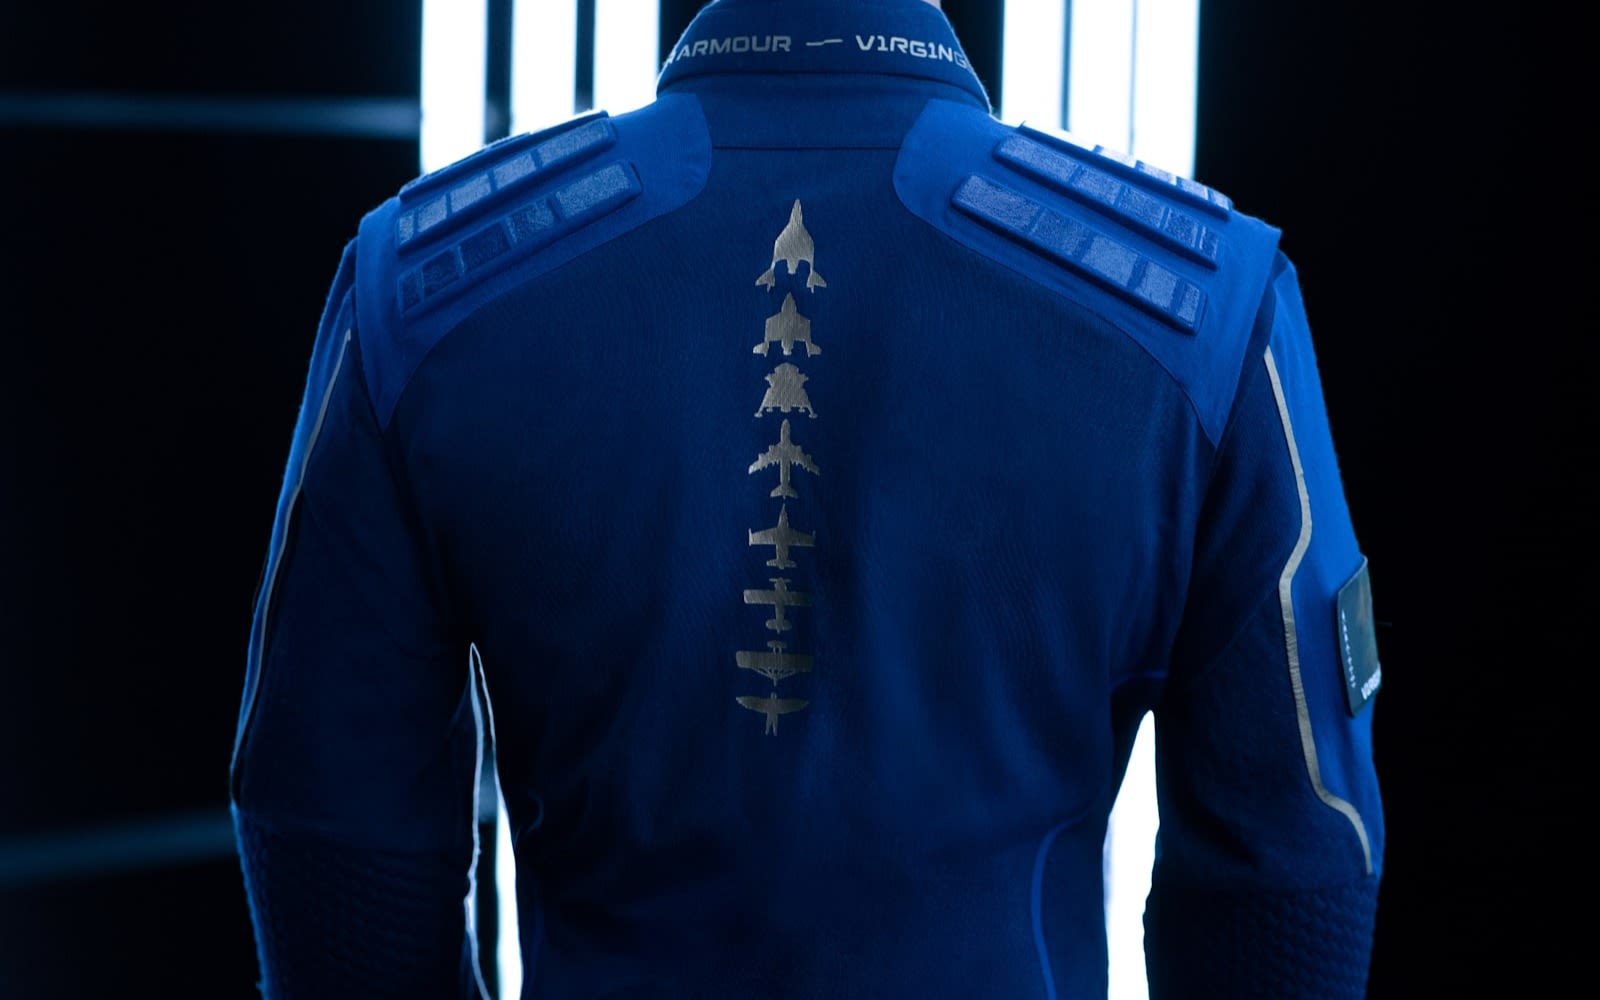 The back detail of the Virgin Galactic spacesuit